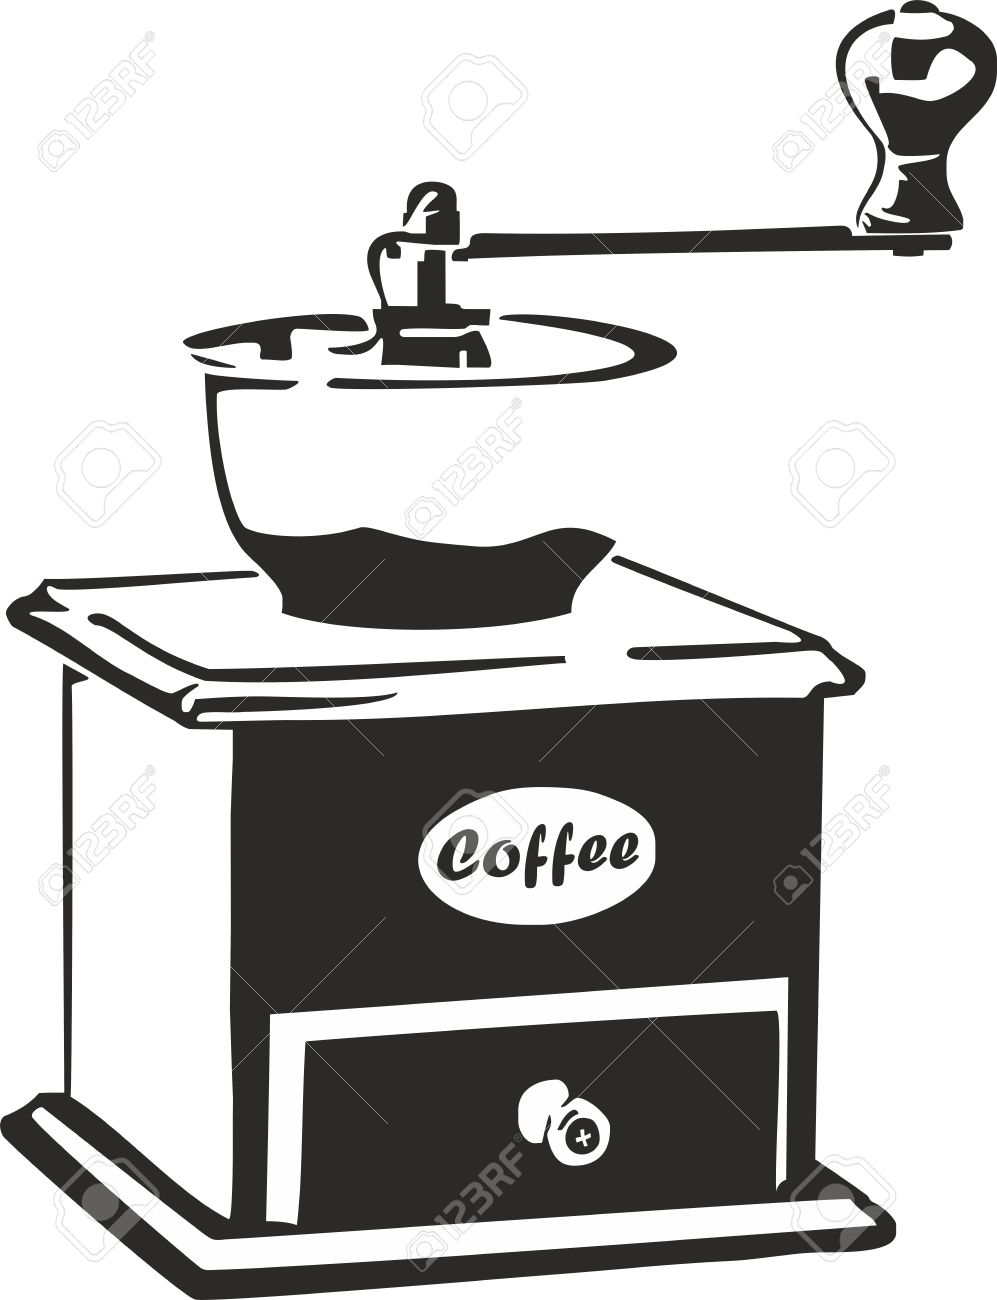 Trabant Clipart Vector Illustration Of An Old Coffee Grinder